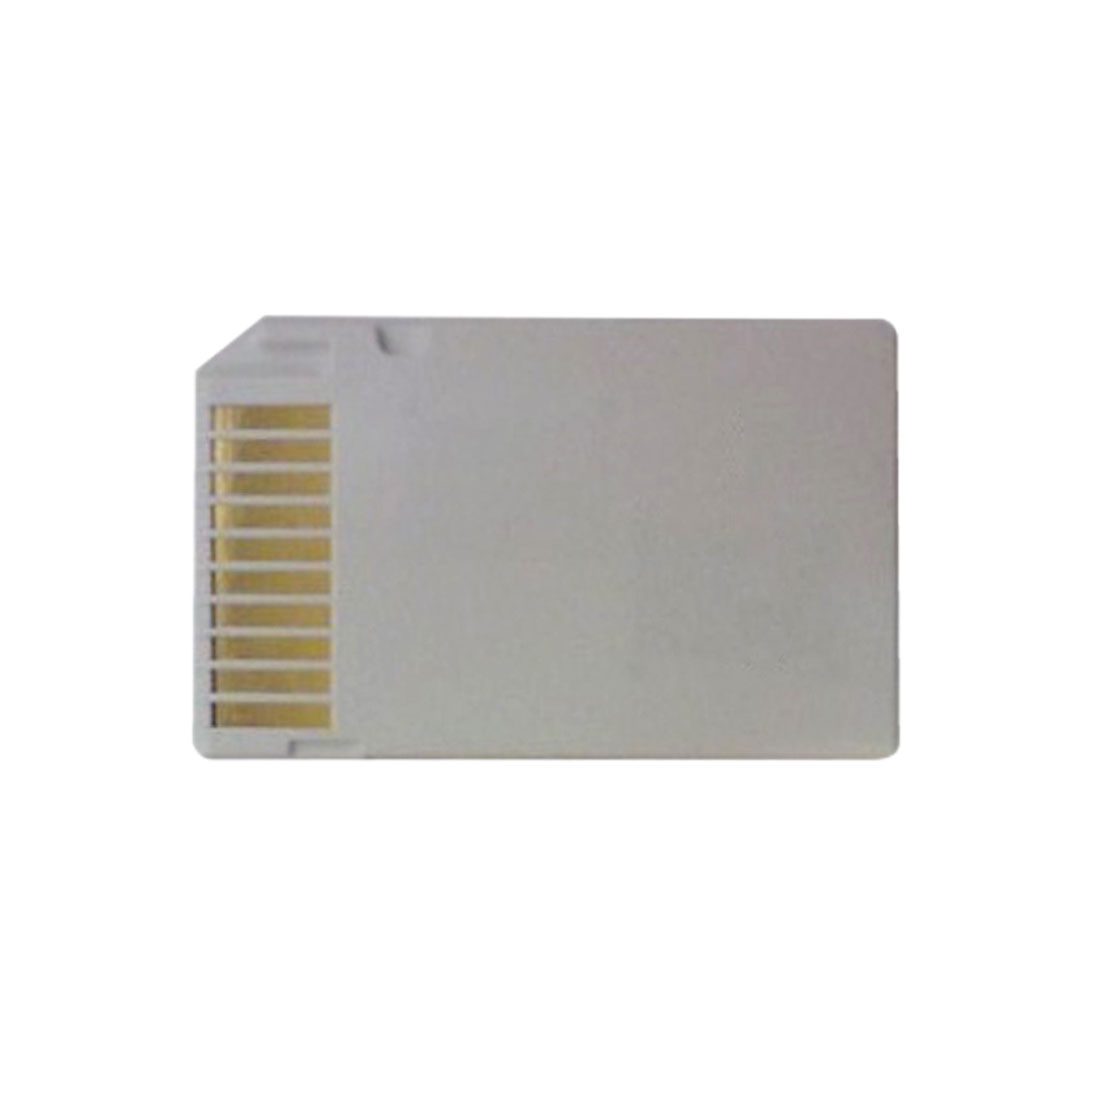 NOYOKERE New Good Sale Dual 2 Slot Micro For SD TF To Memory Stick MS Card Pro Duo Reader Adapter For PSP